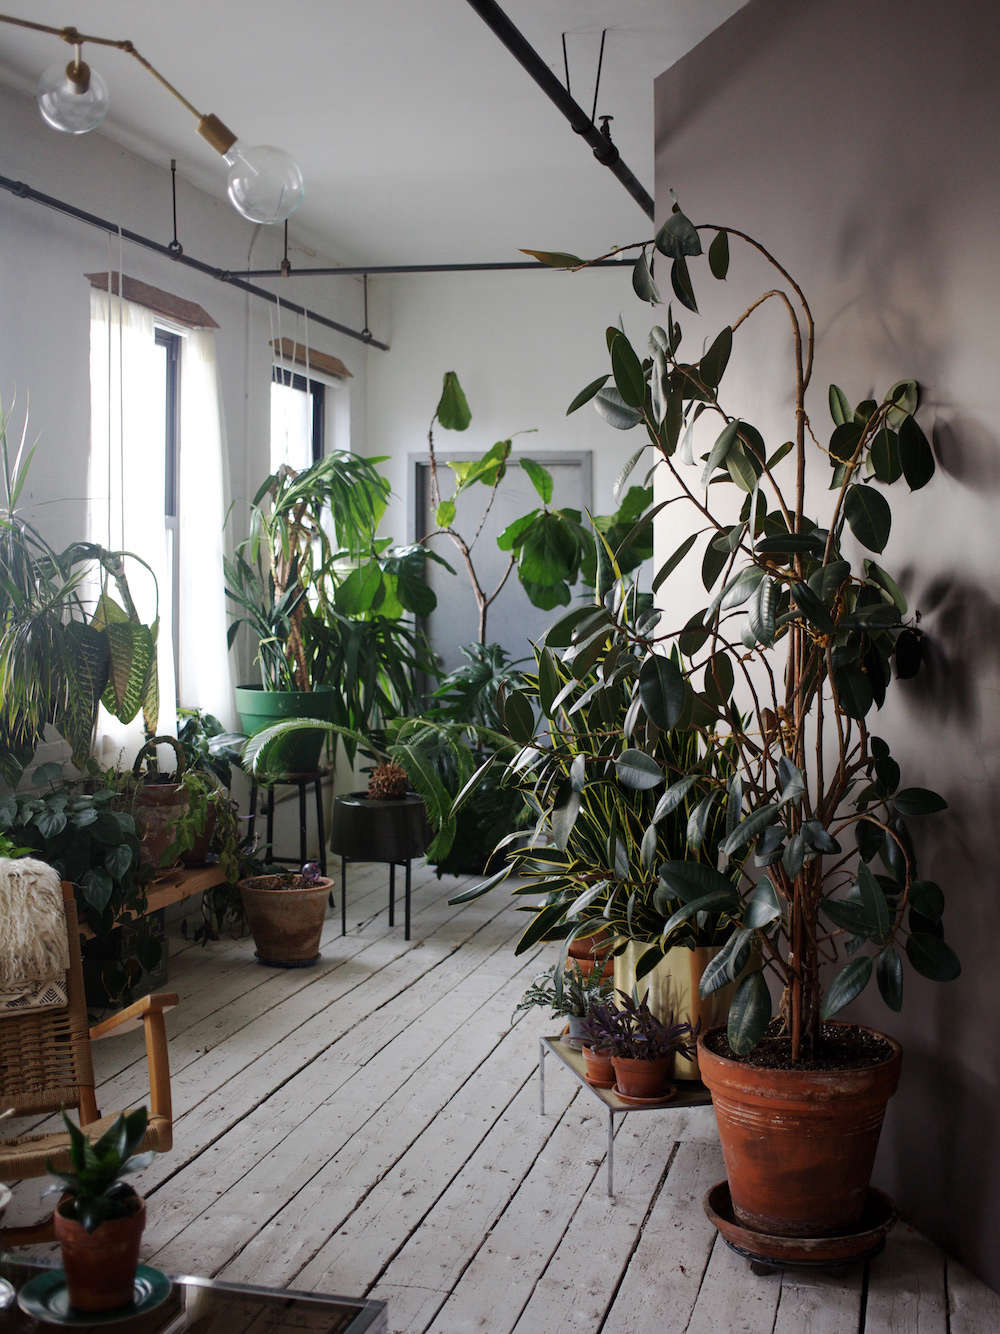 The apartment was painted white when she arrived, and Simon-Alexander added a gray-purple accent wall as the backdrop for her indoor jungle. At far right a rubber tree was &#8